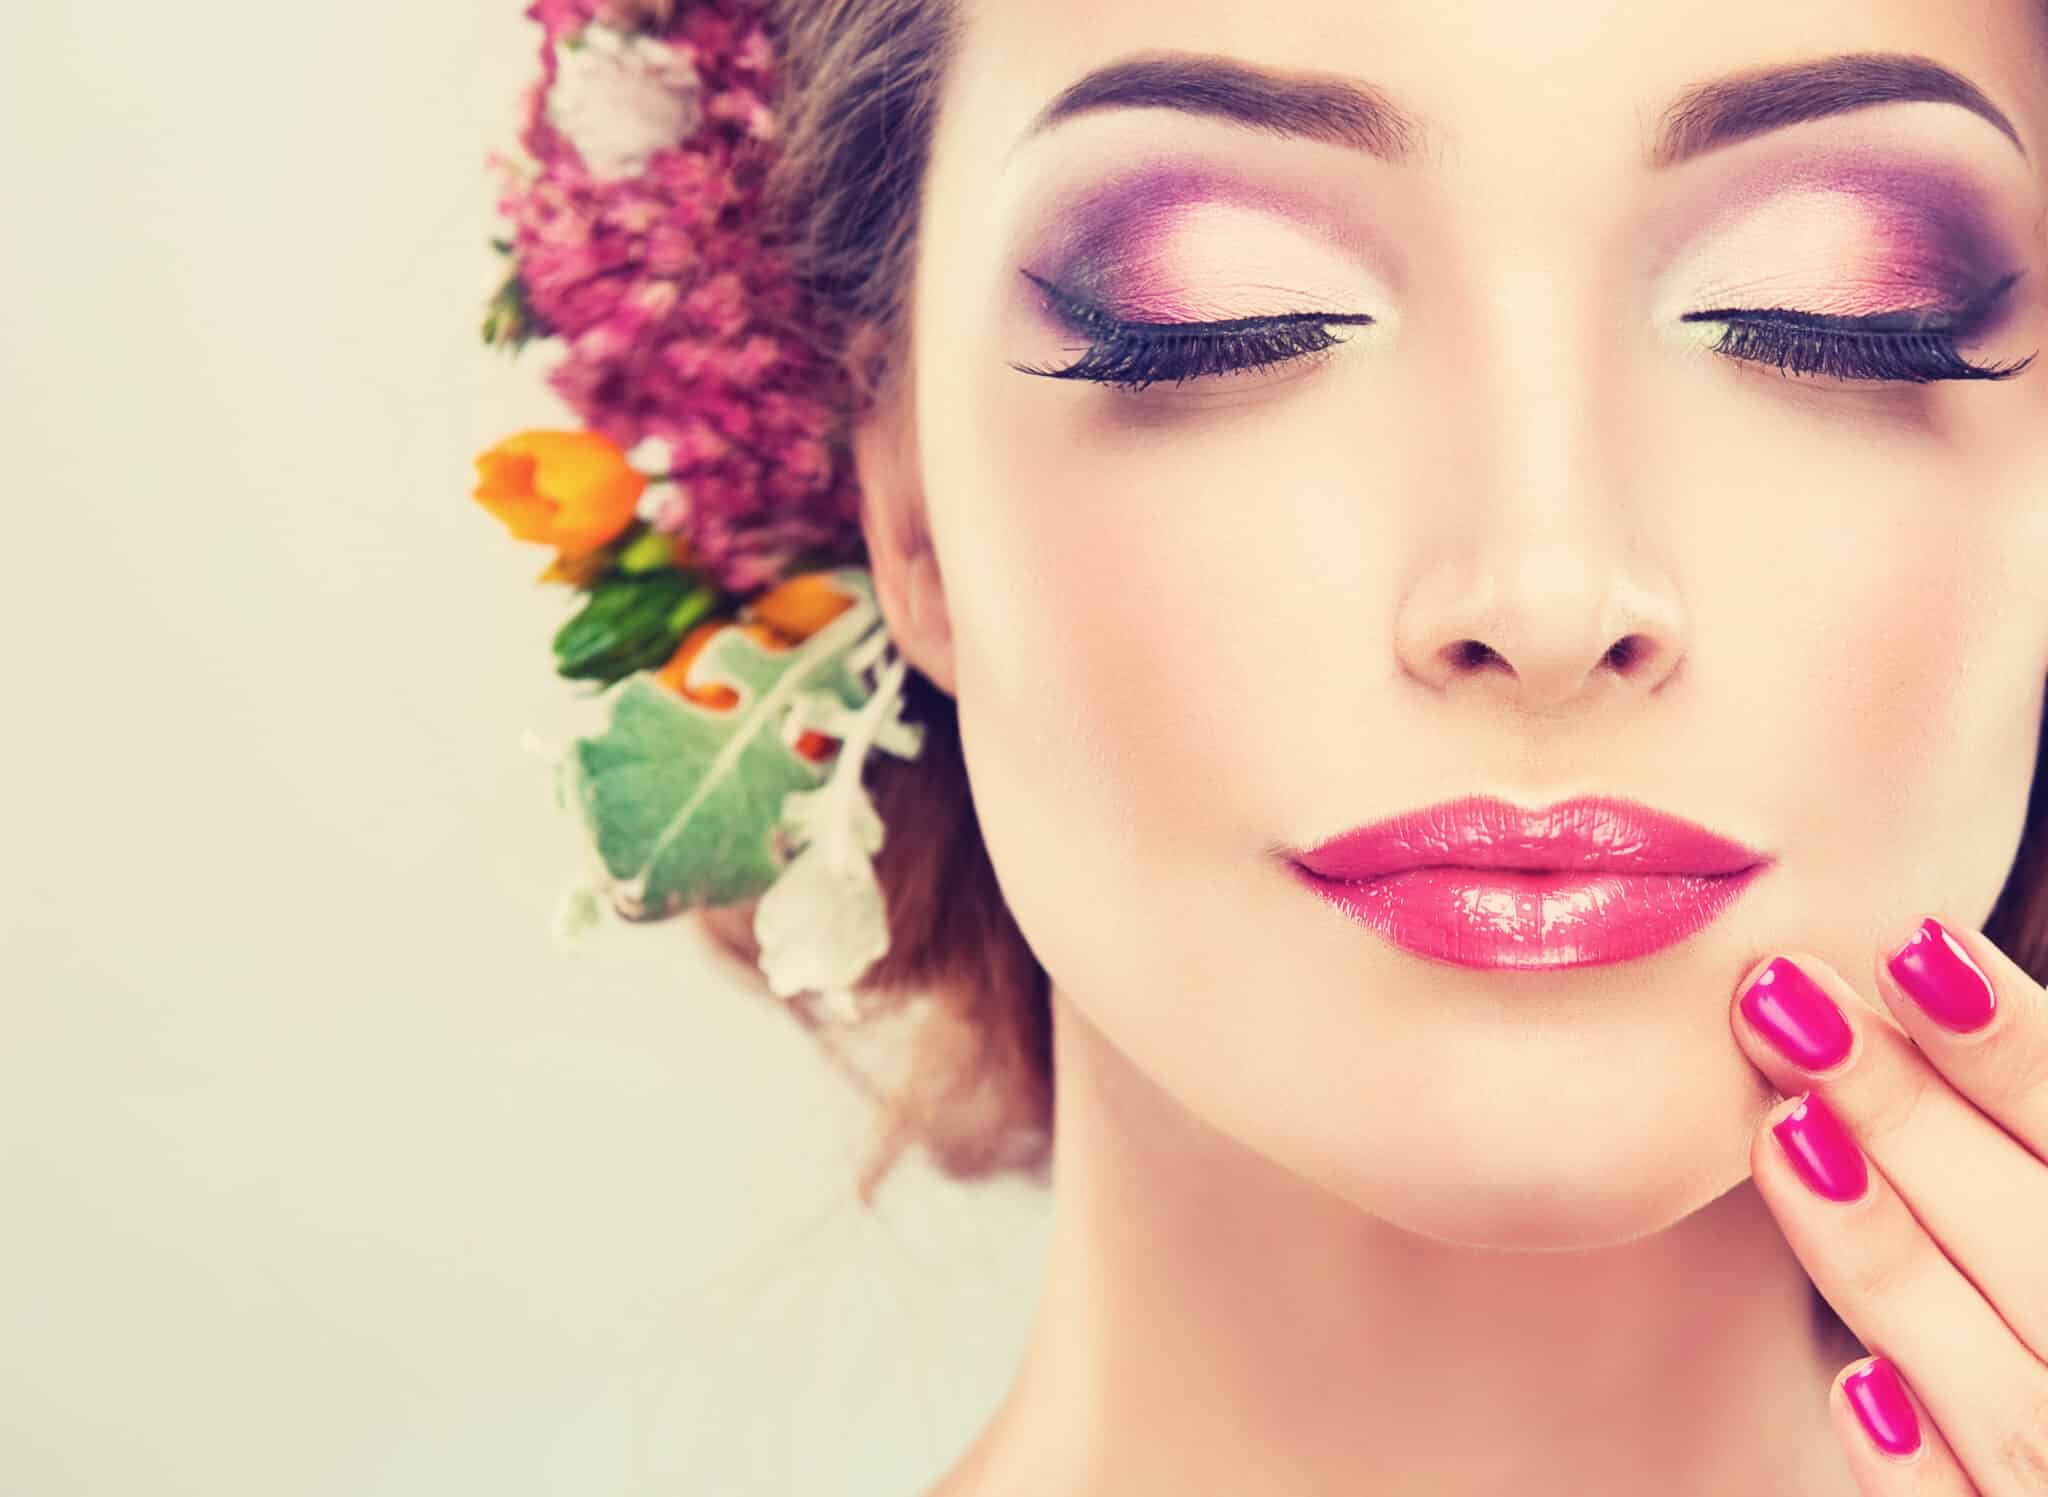 6 Health & Beauty Tips For Spring